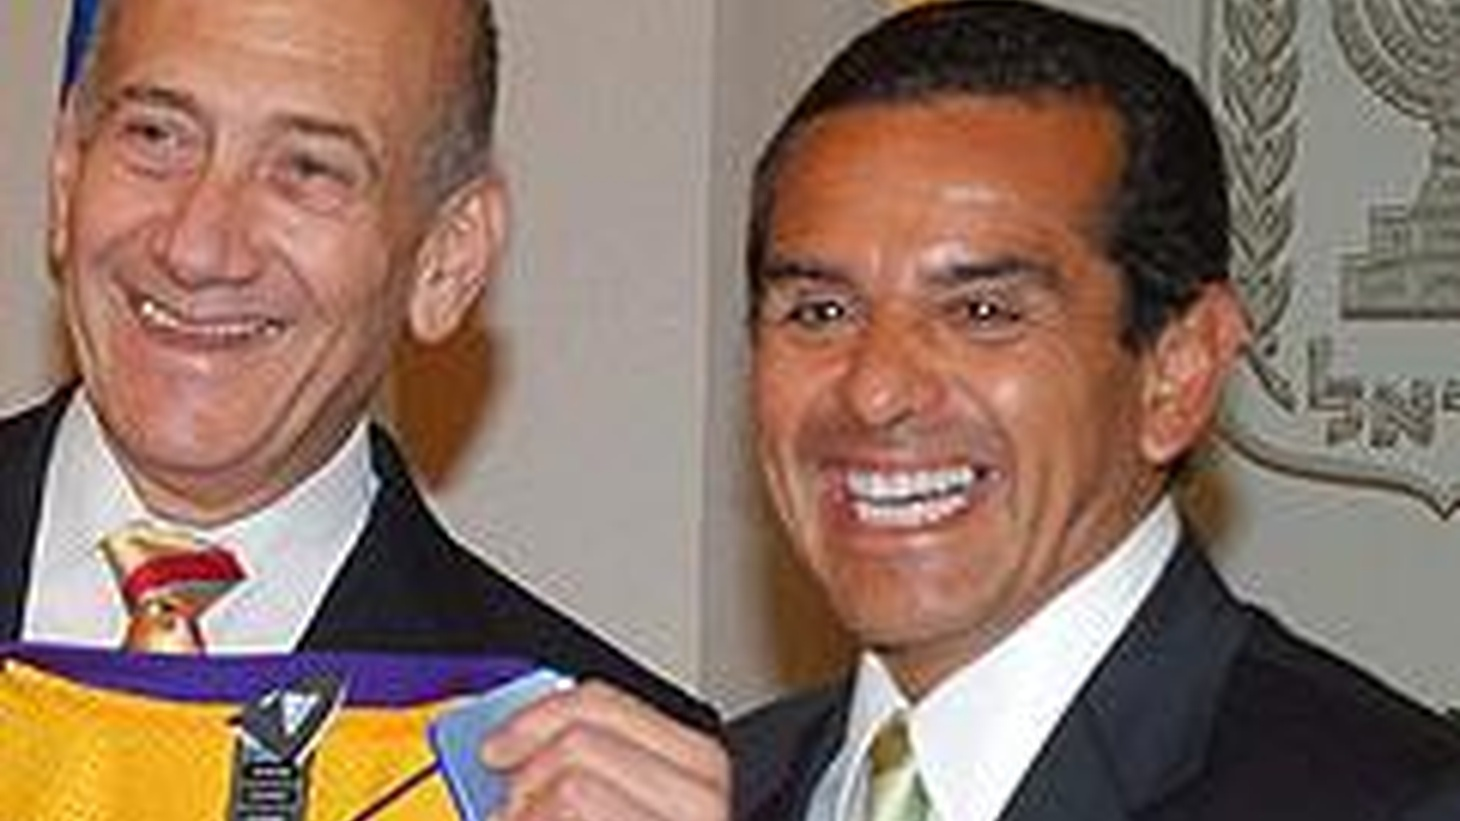 Since this is the first day of summer, it seems appropriate to talk about traveling. Mayor Antonio Villaraigosa flew to Israel last week on official for the city...